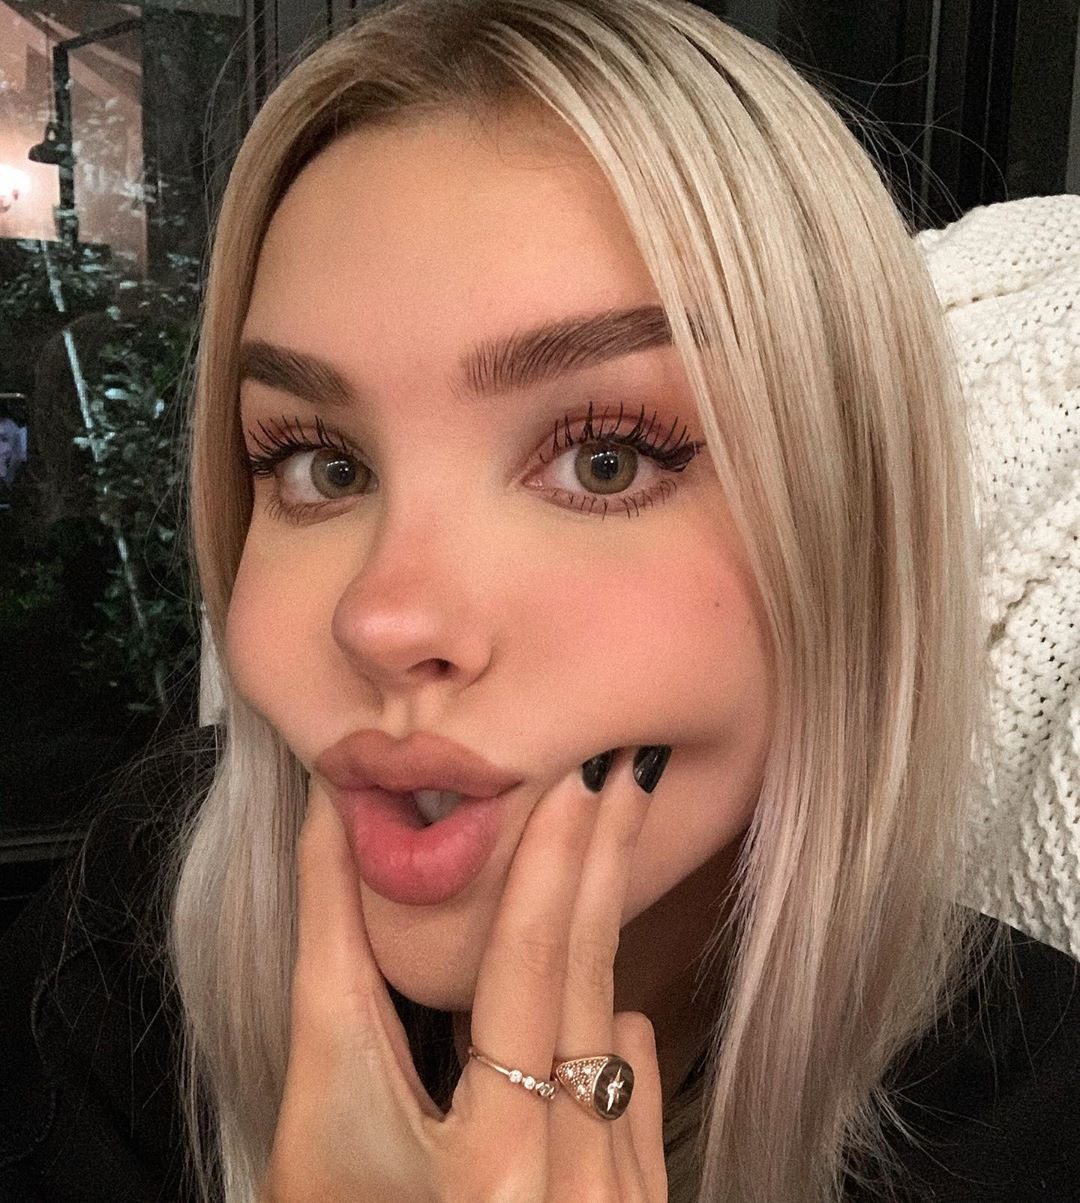 Maria Domark blond hairs pic, Lovely Face, Natural Lips